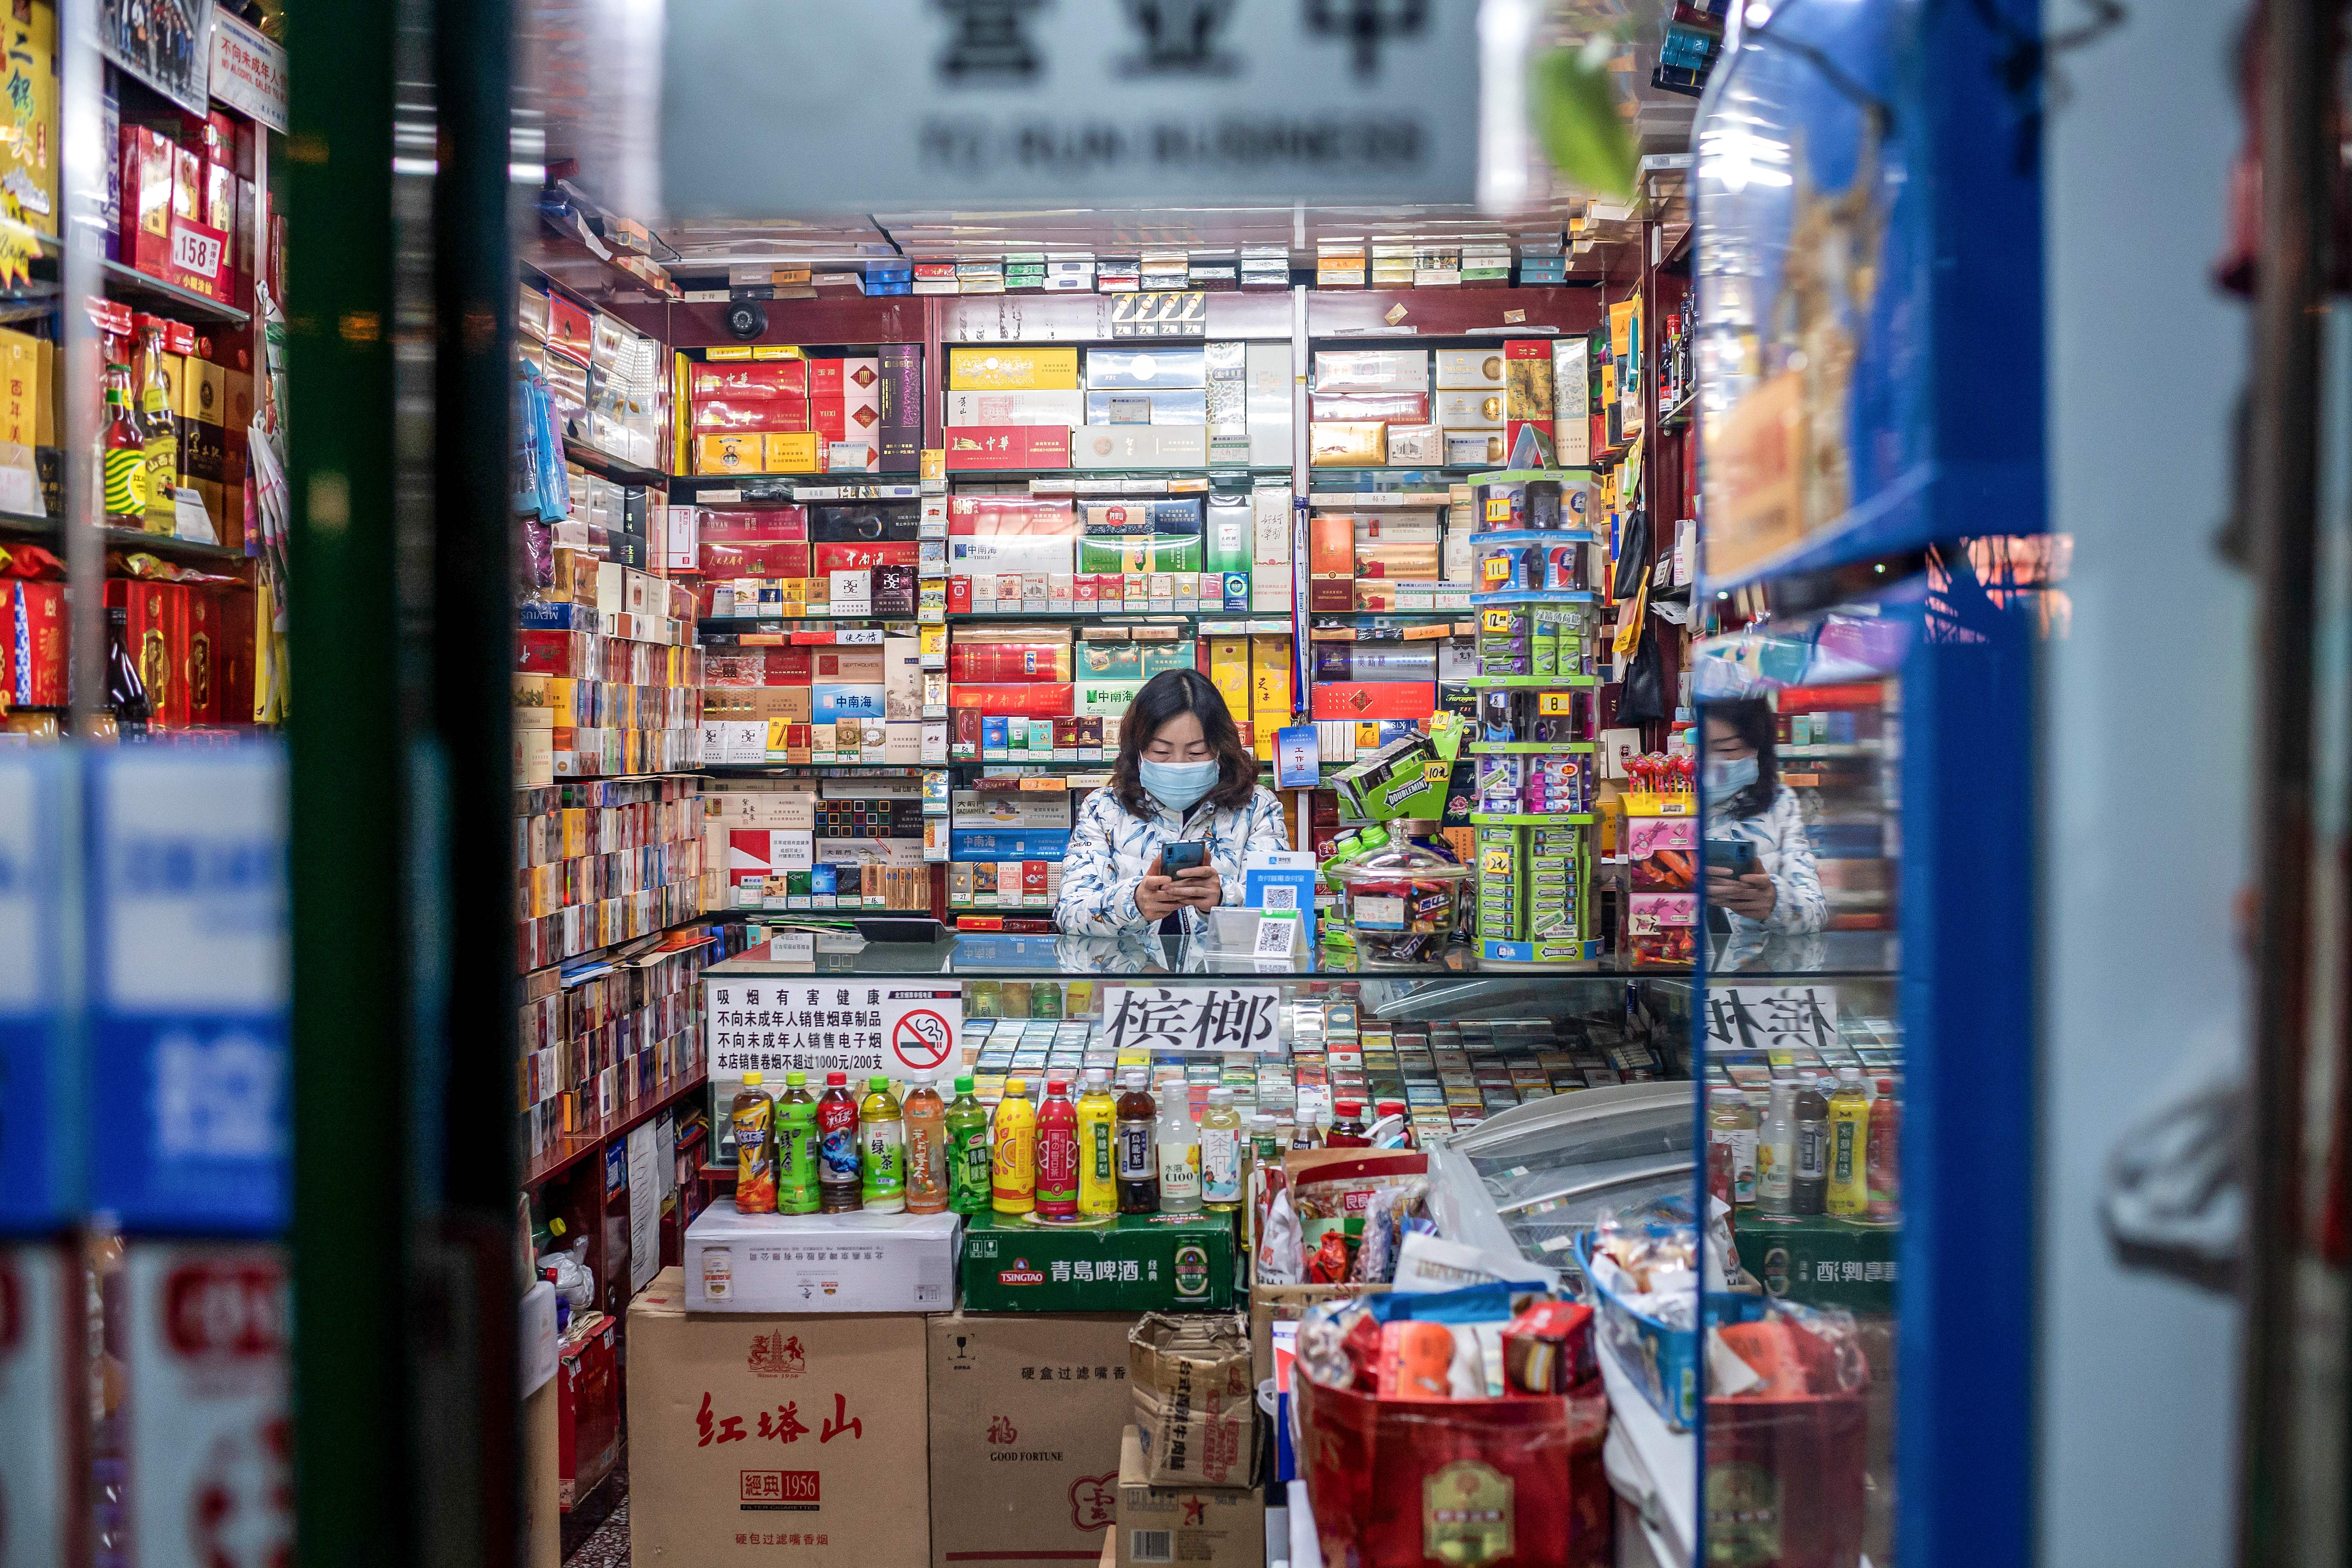 Avendor wearing a protective face mask waits for customers at a shop in Beijing.